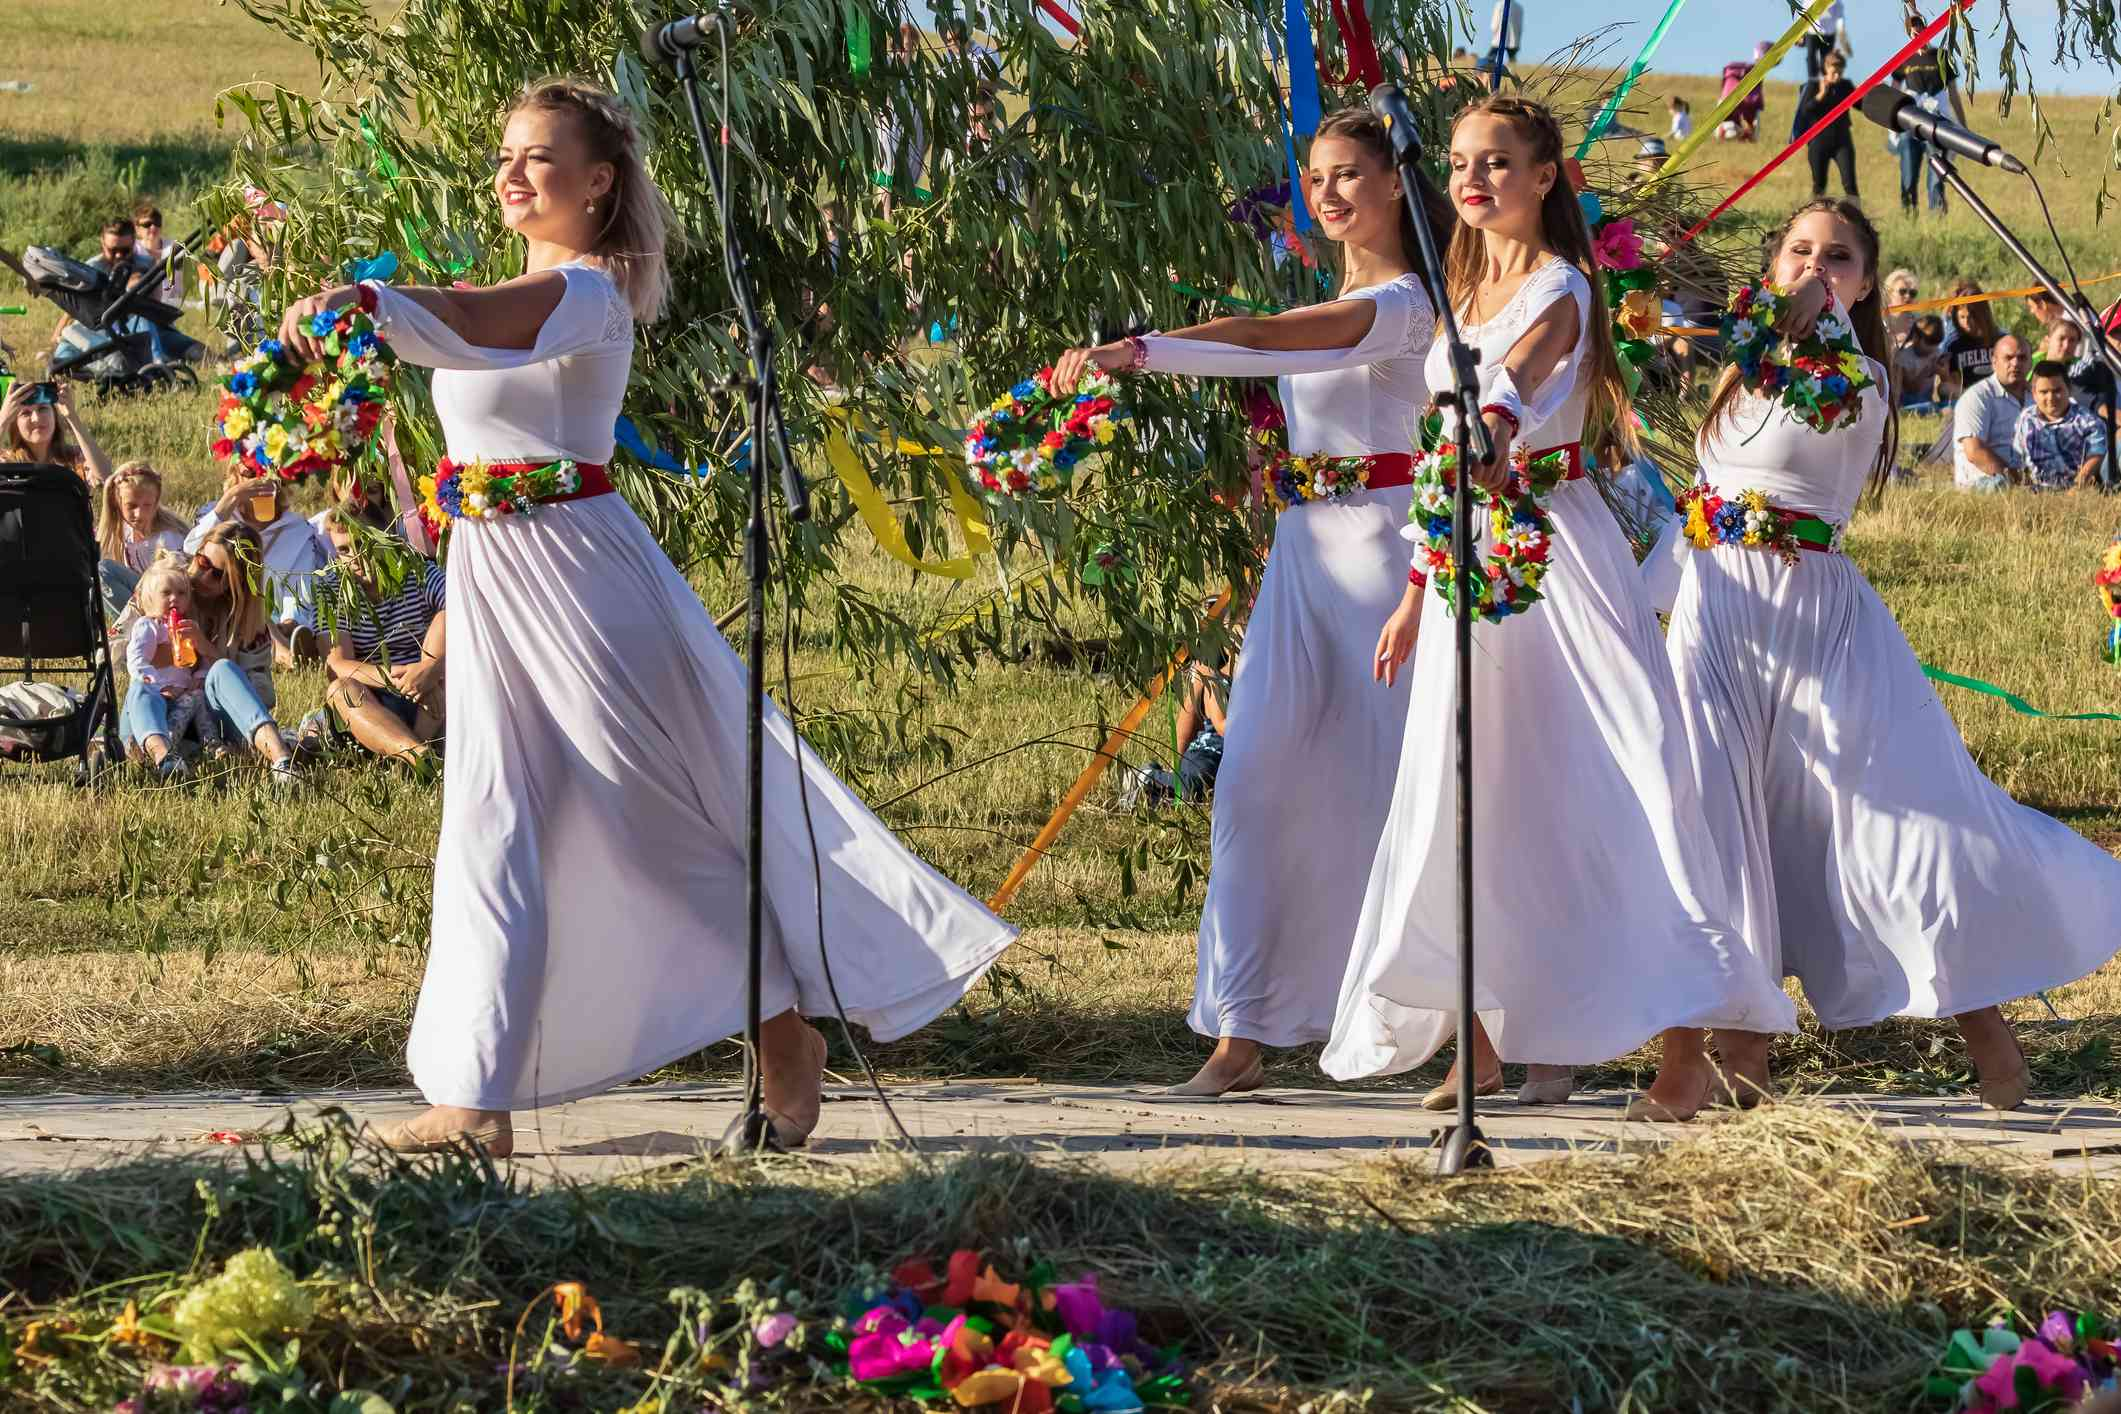 The traditional annual Slavic holiday of Ivan Kupala in the open air on a large field.